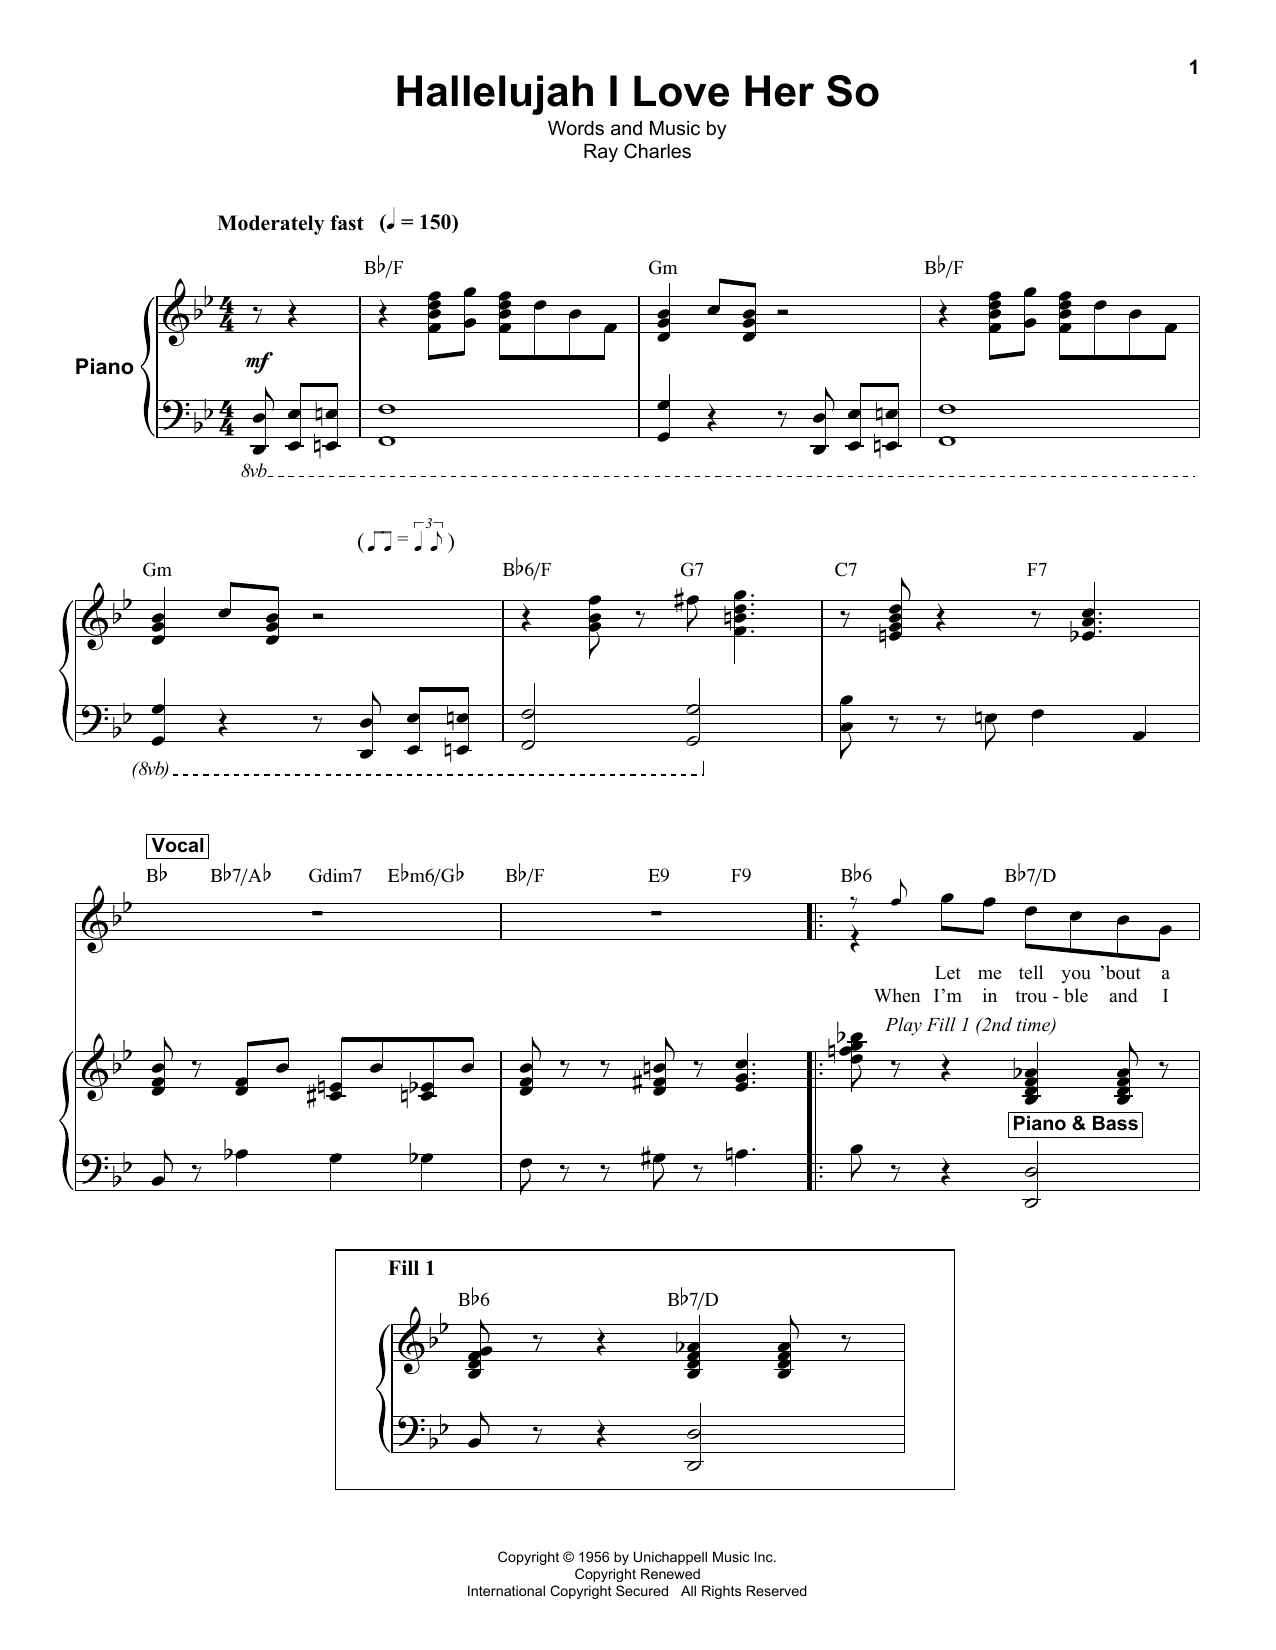 Ray Charles Hallelujah, I Love Her So sheet music notes and chords. Download Printable PDF.